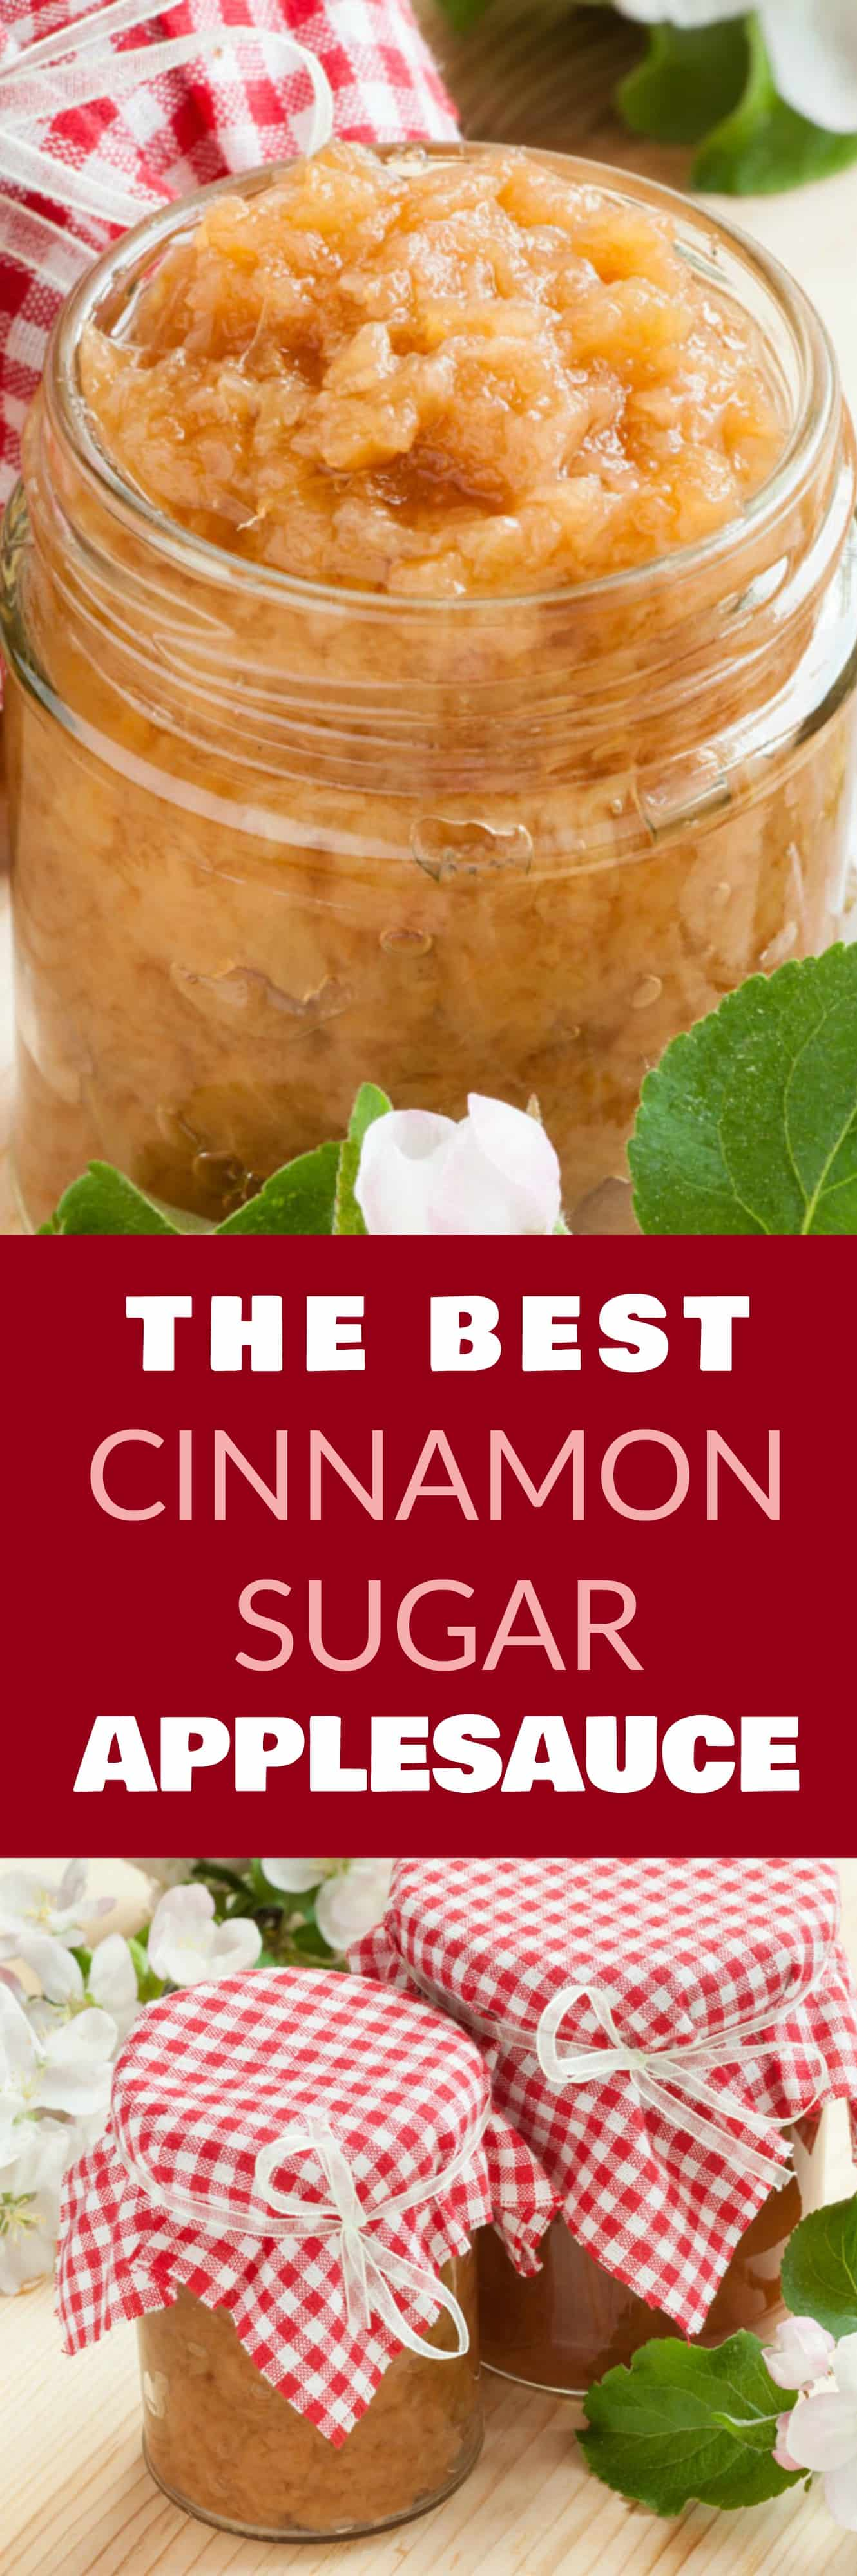 The BEST Cinnamon Sugar Applesauce recipe! This is my FAVORITE homemade apple picking recipe that's so easy to make! All you need is apples, cinnamon, sugar and lemon juice! It's quick to make and tastes delicious! I love eating this as a snack and baking bread with it! You can can the applesauce too!